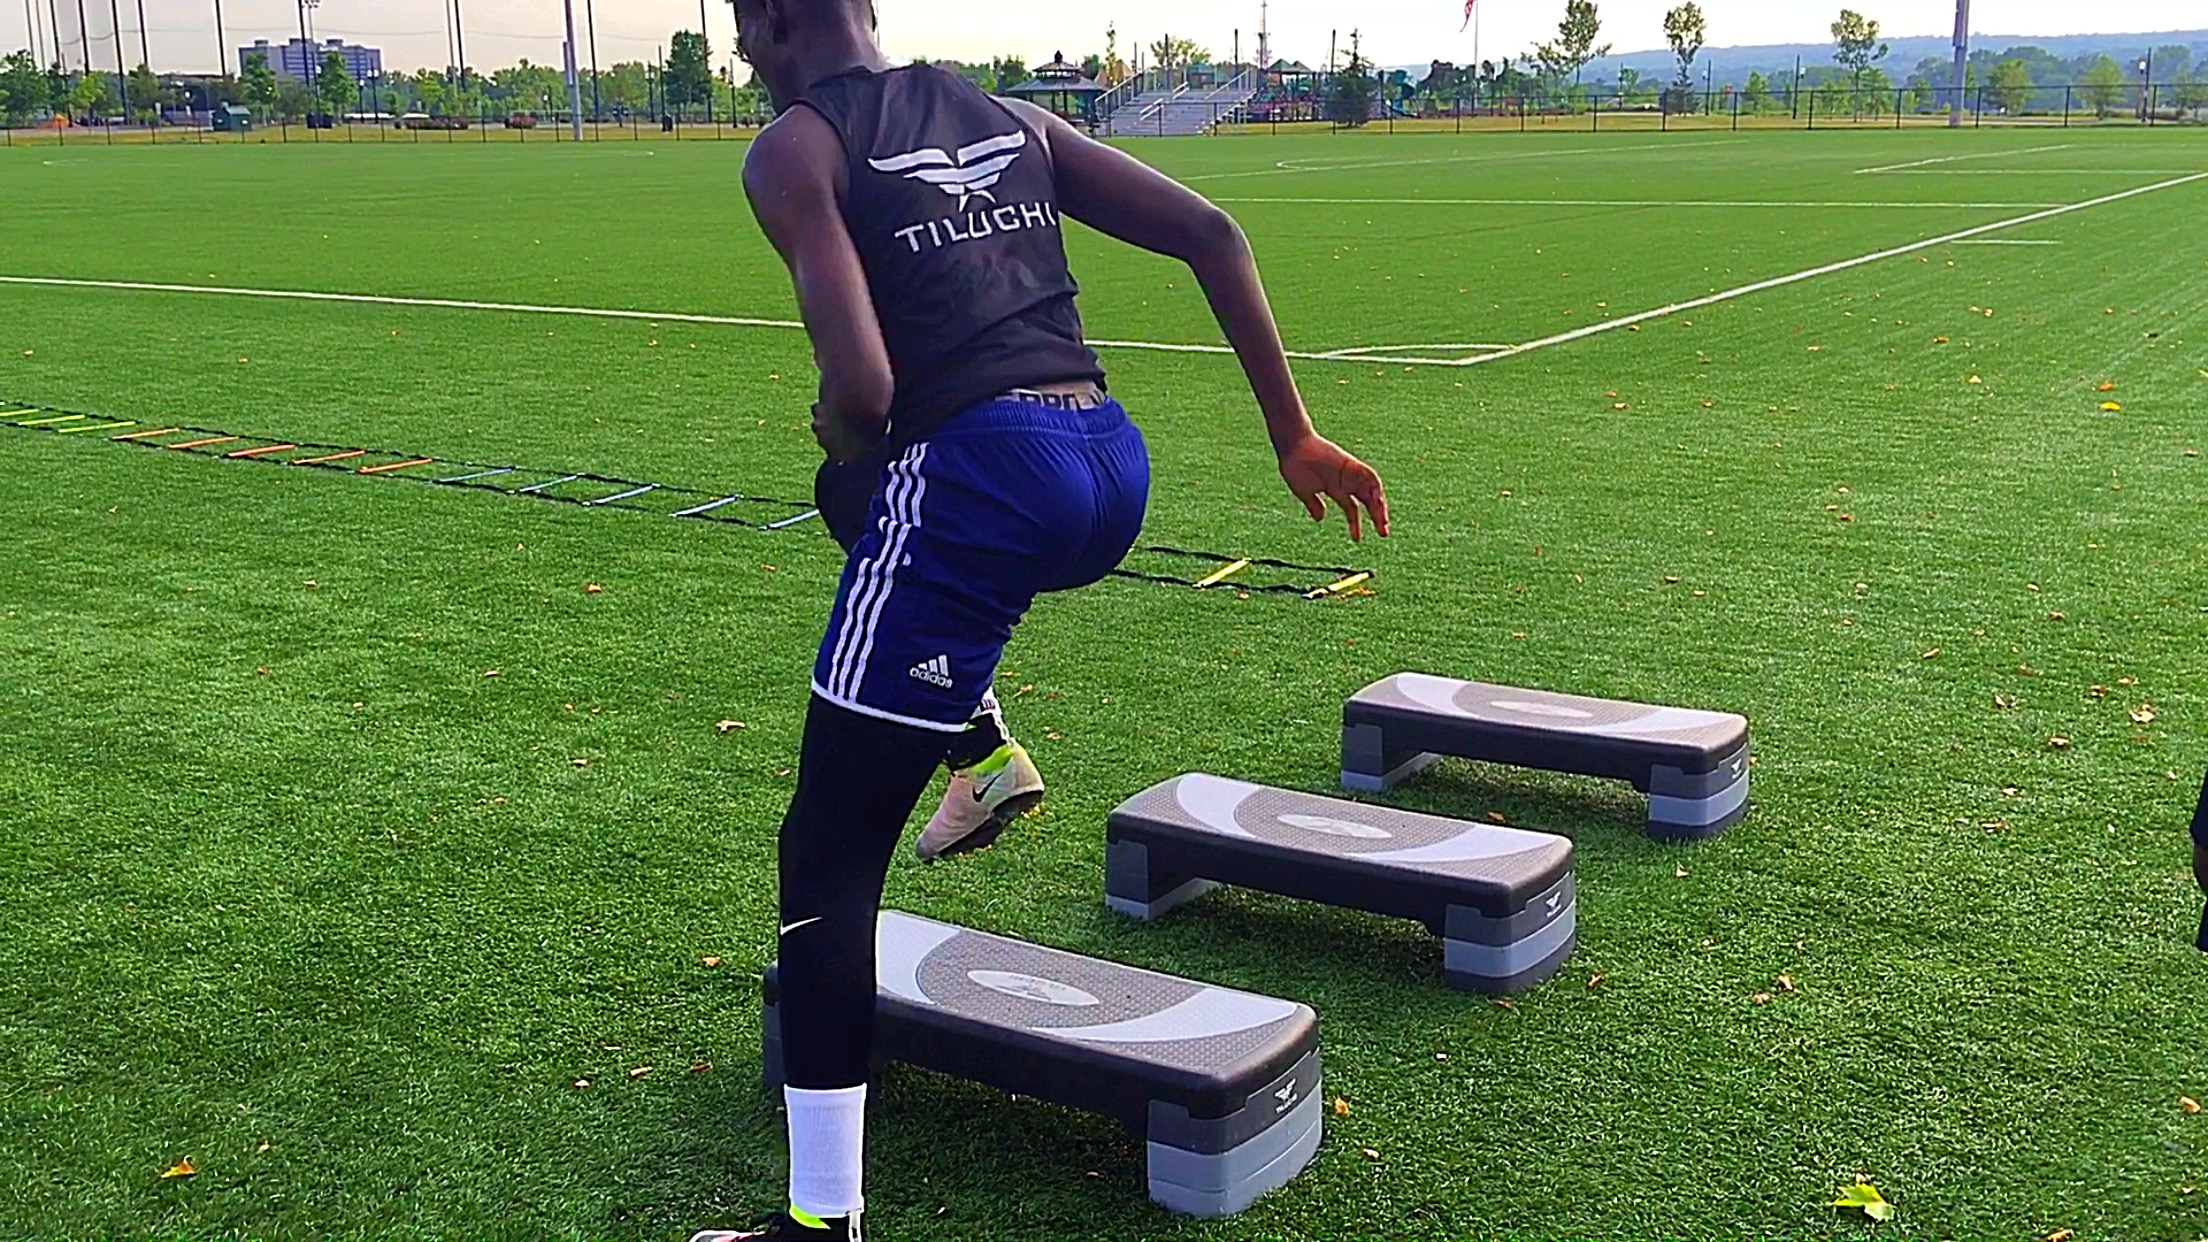 Timmothy Weah Training at Tiluchi Elite Summer 2016